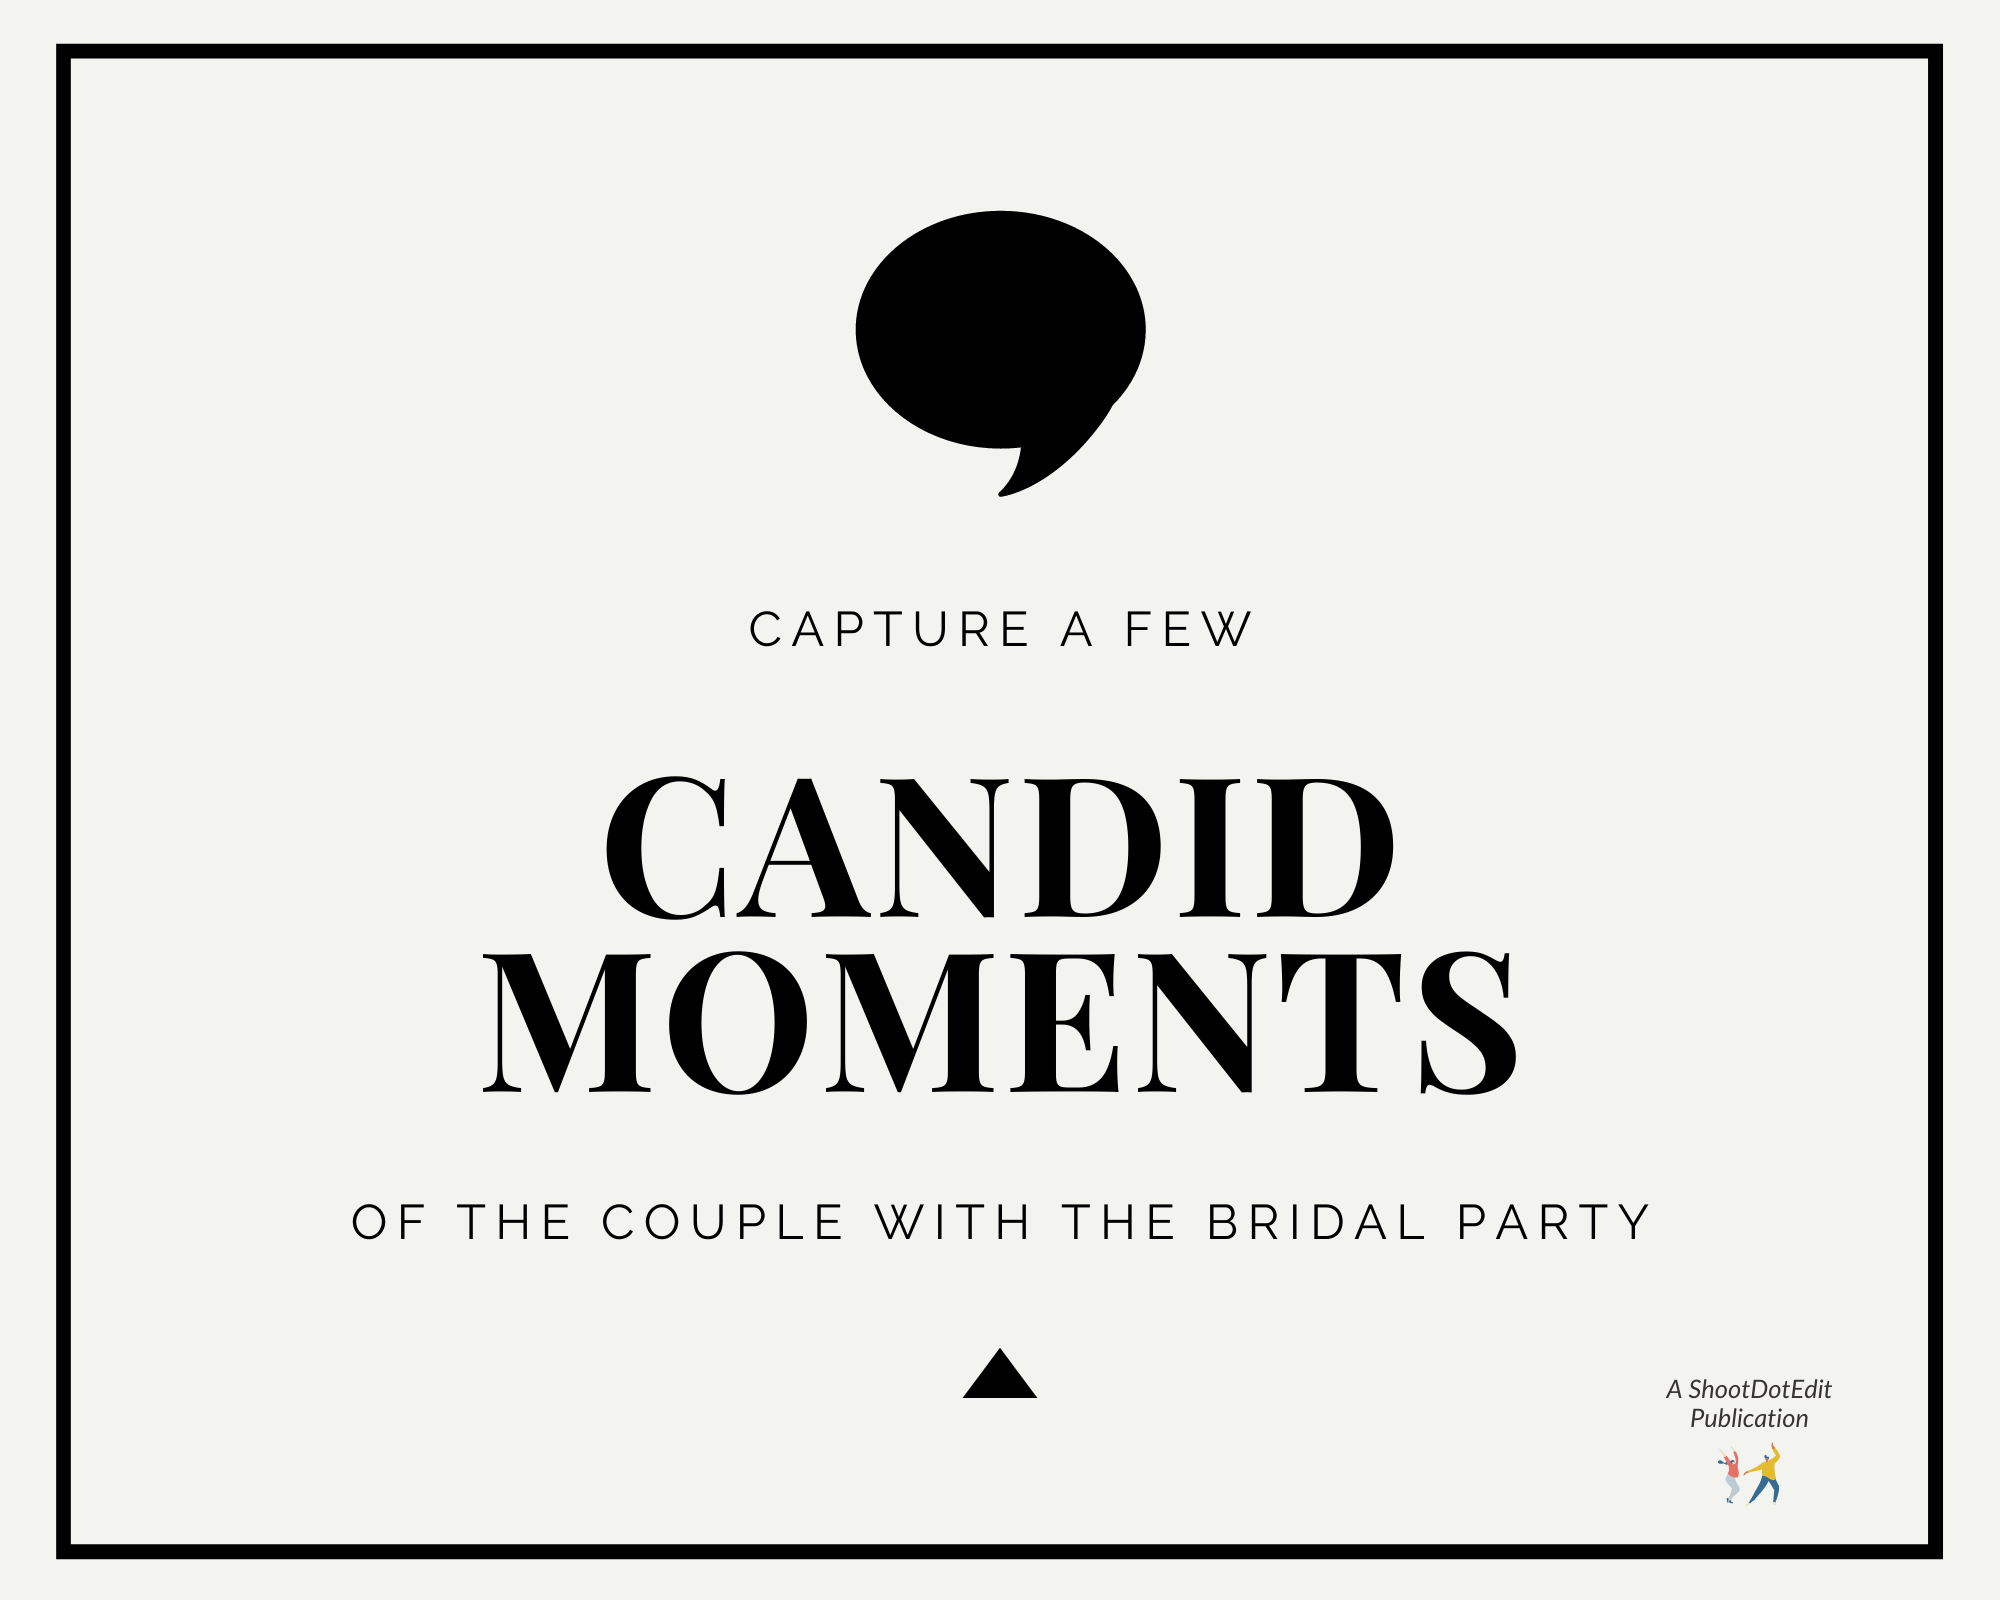 Infographic stating capture a few candid moments of the couple with the bridal party